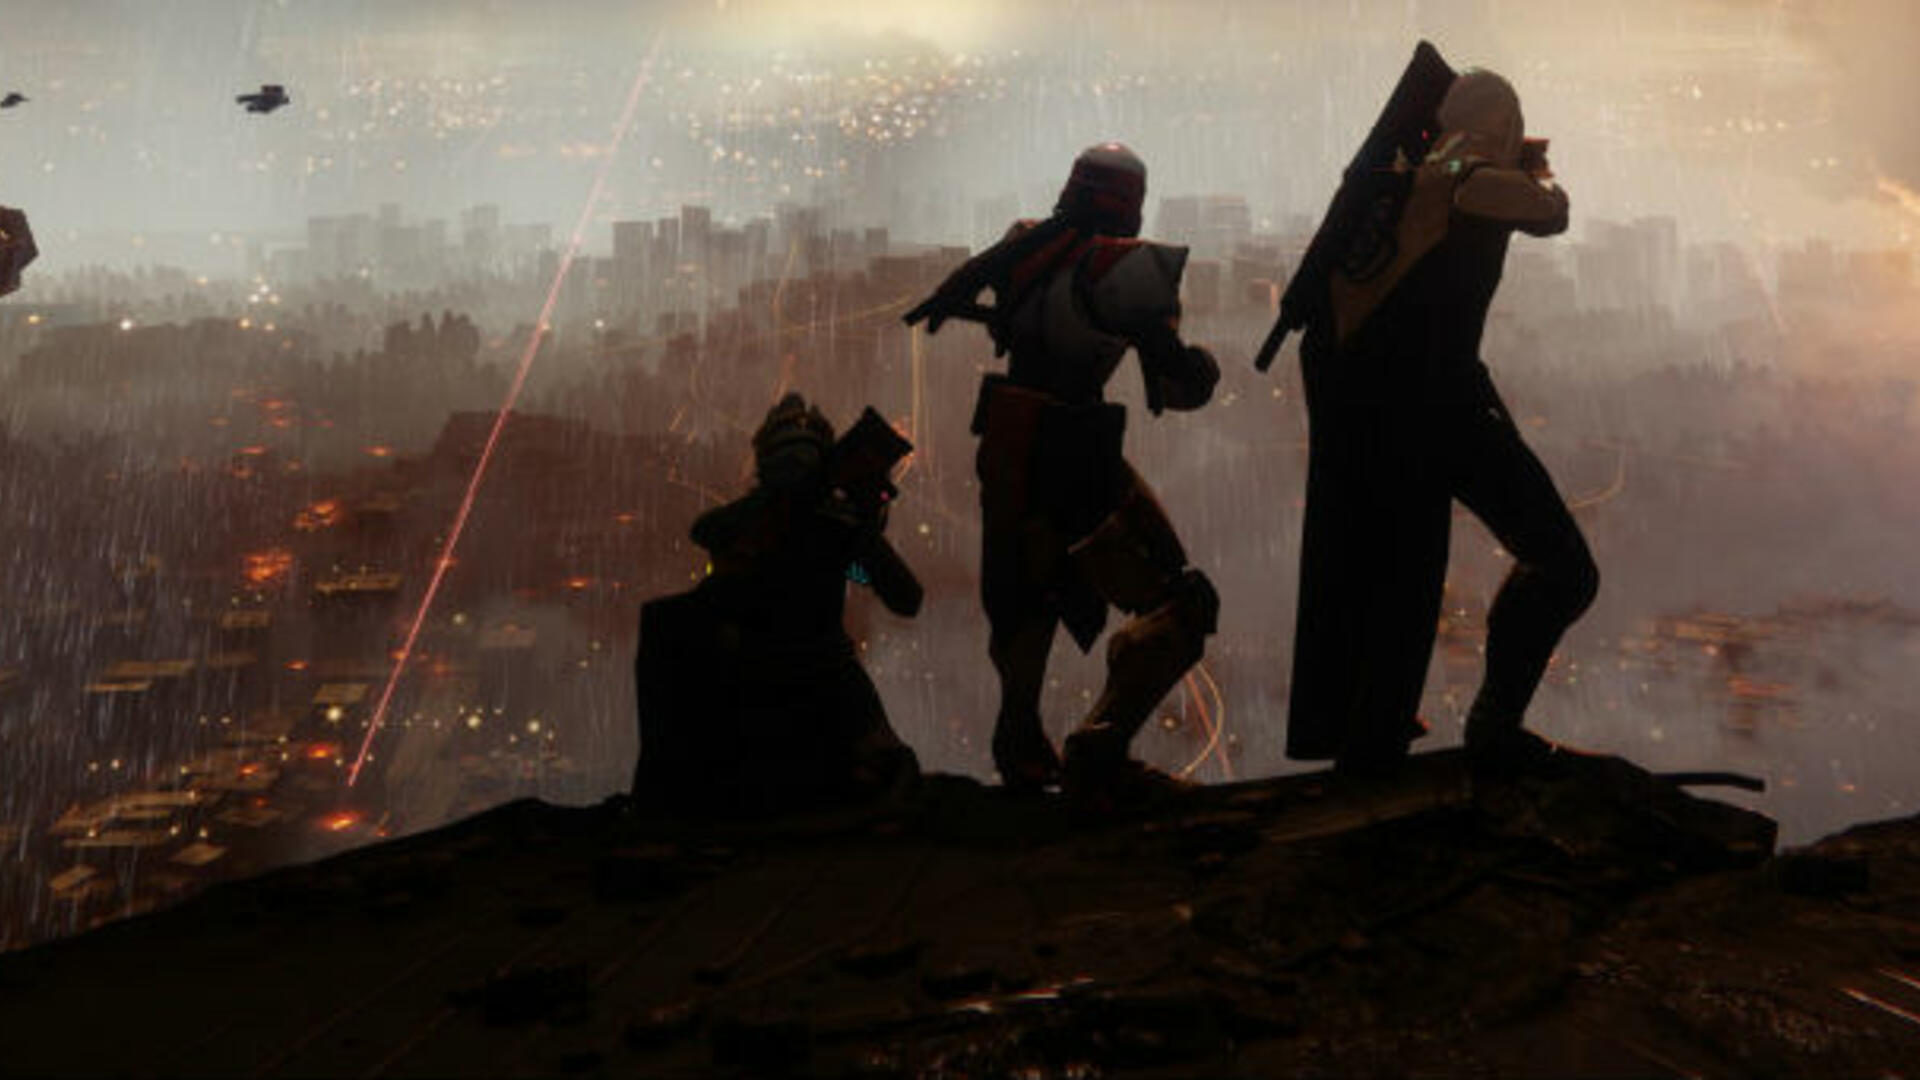 Destiny 2 Limits Use of Some Game Capture Programs and Overlays